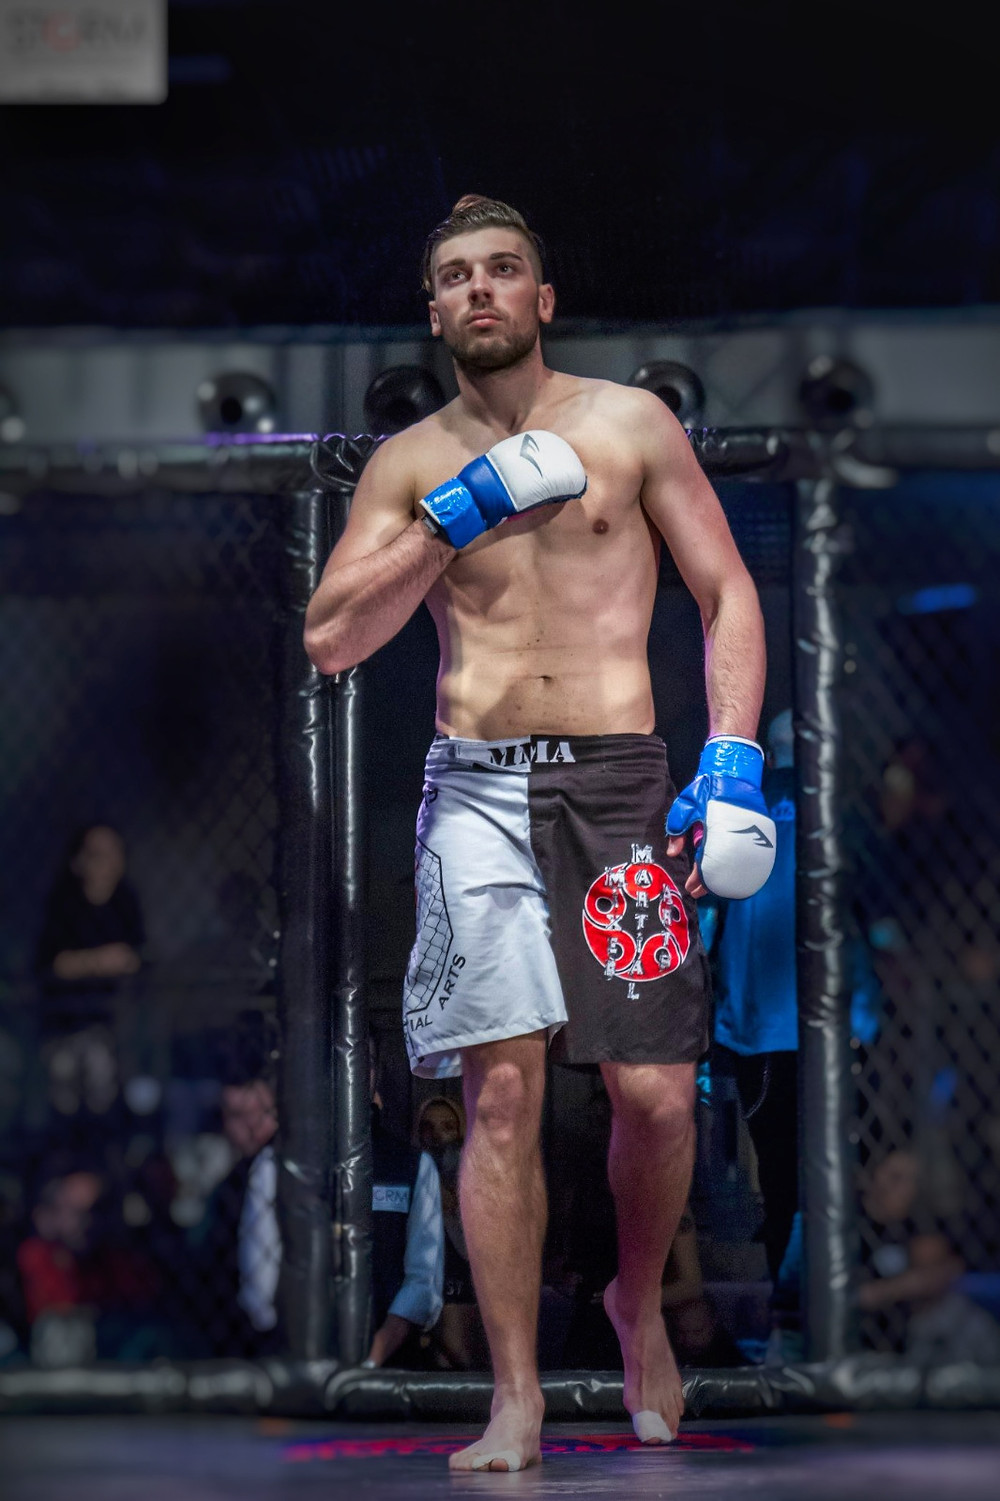 PAOLO ANASTASI MMA fighter